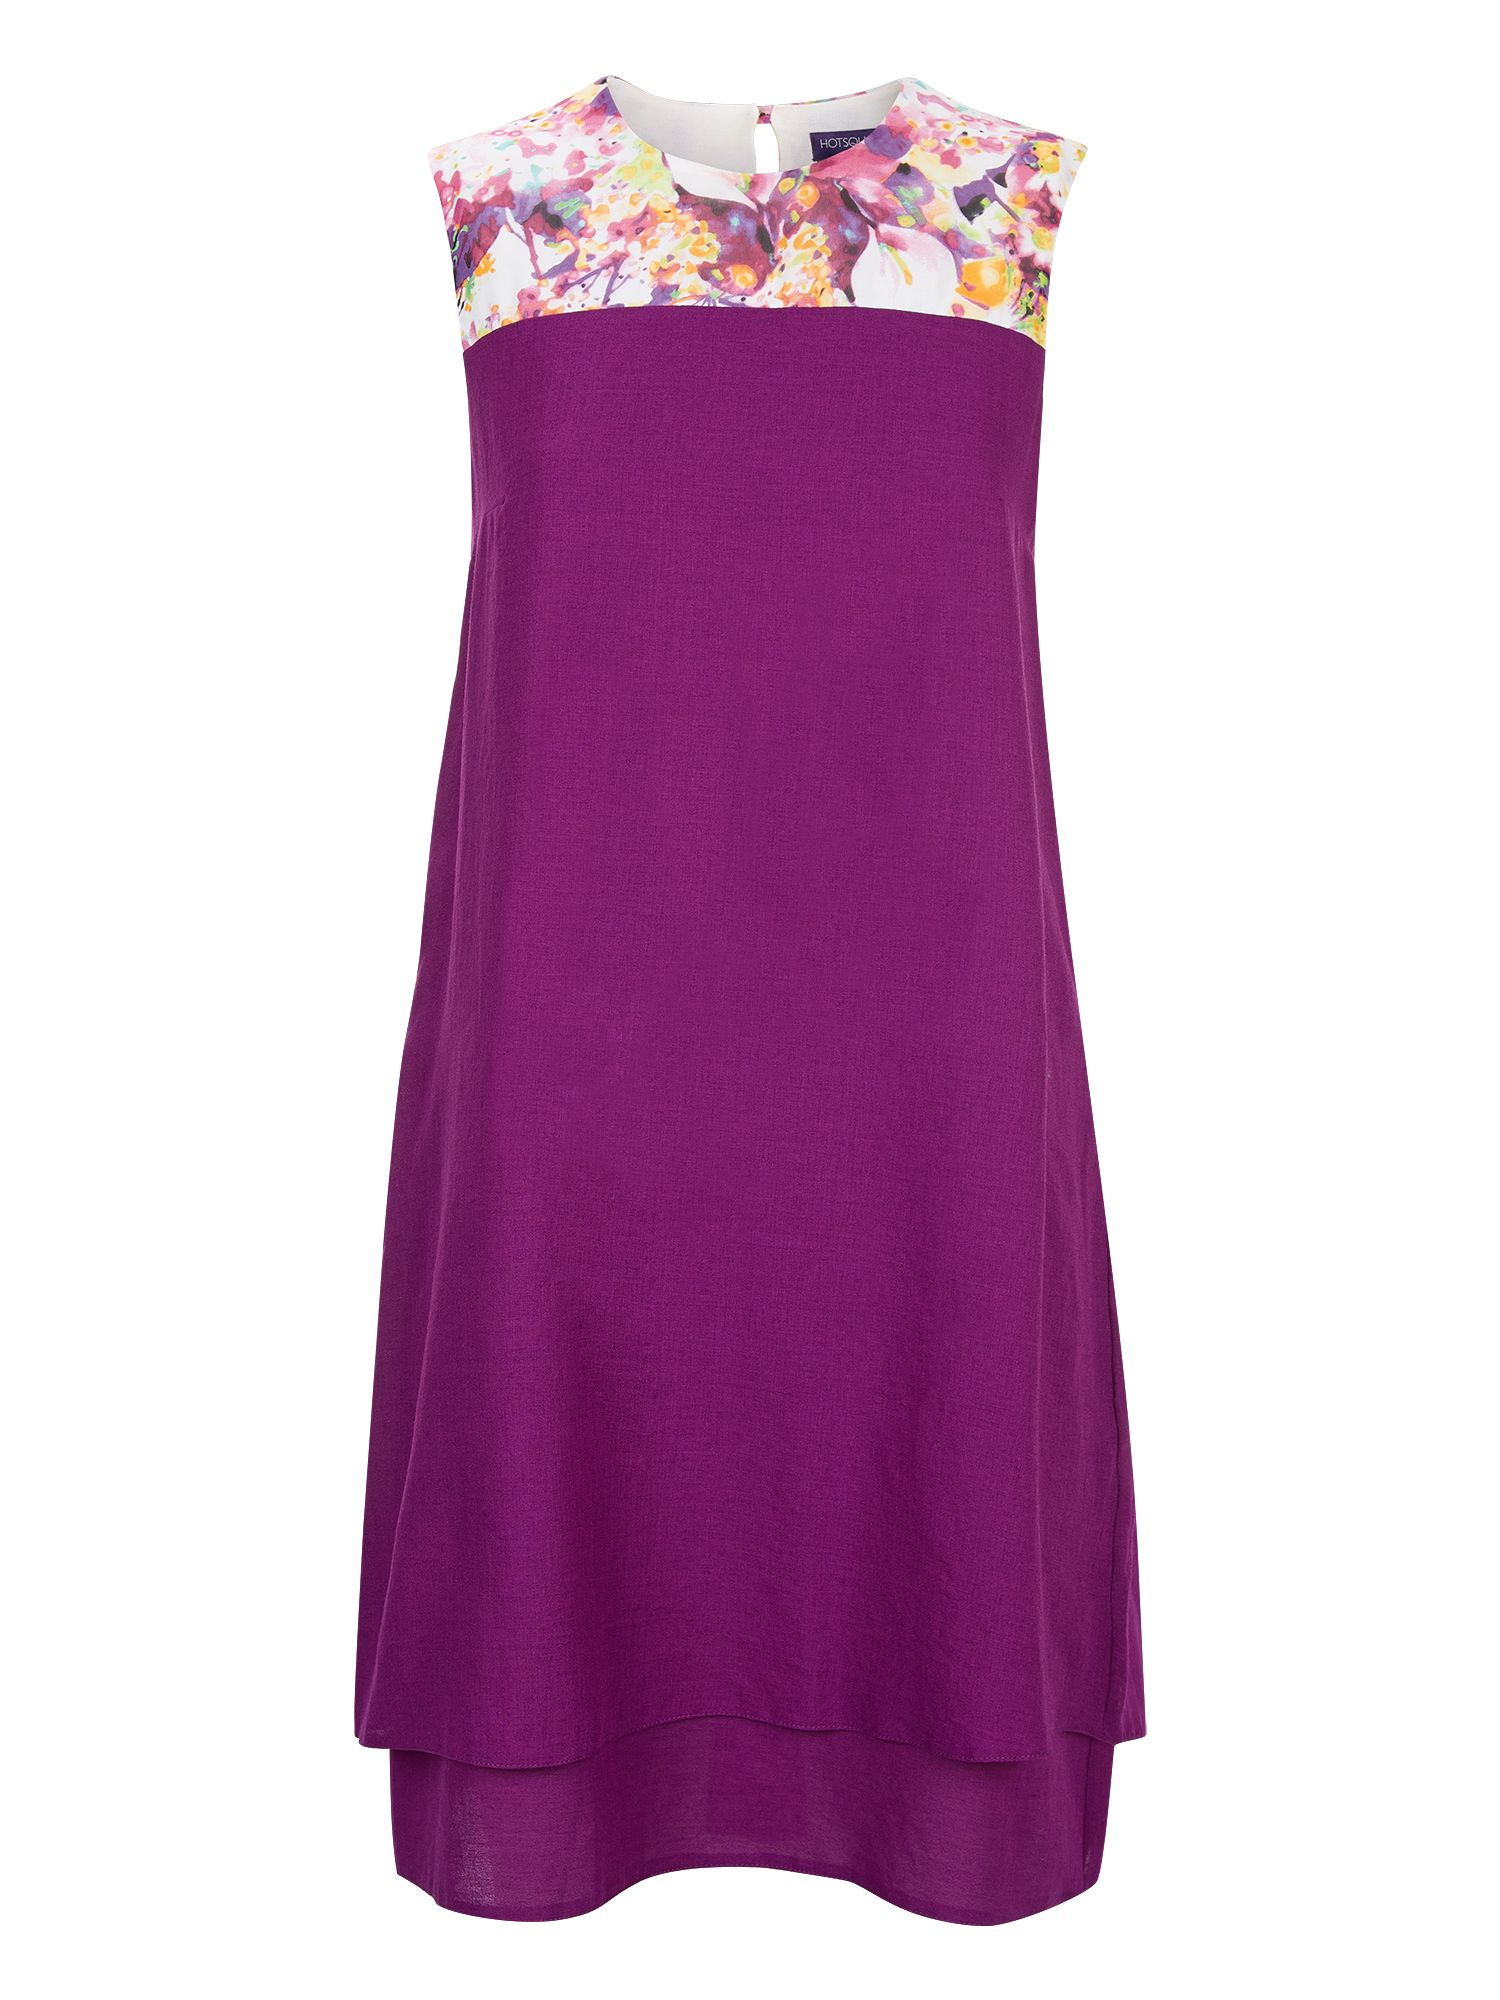 HotSquash Double Layered Dress in CoolFresh, Purple